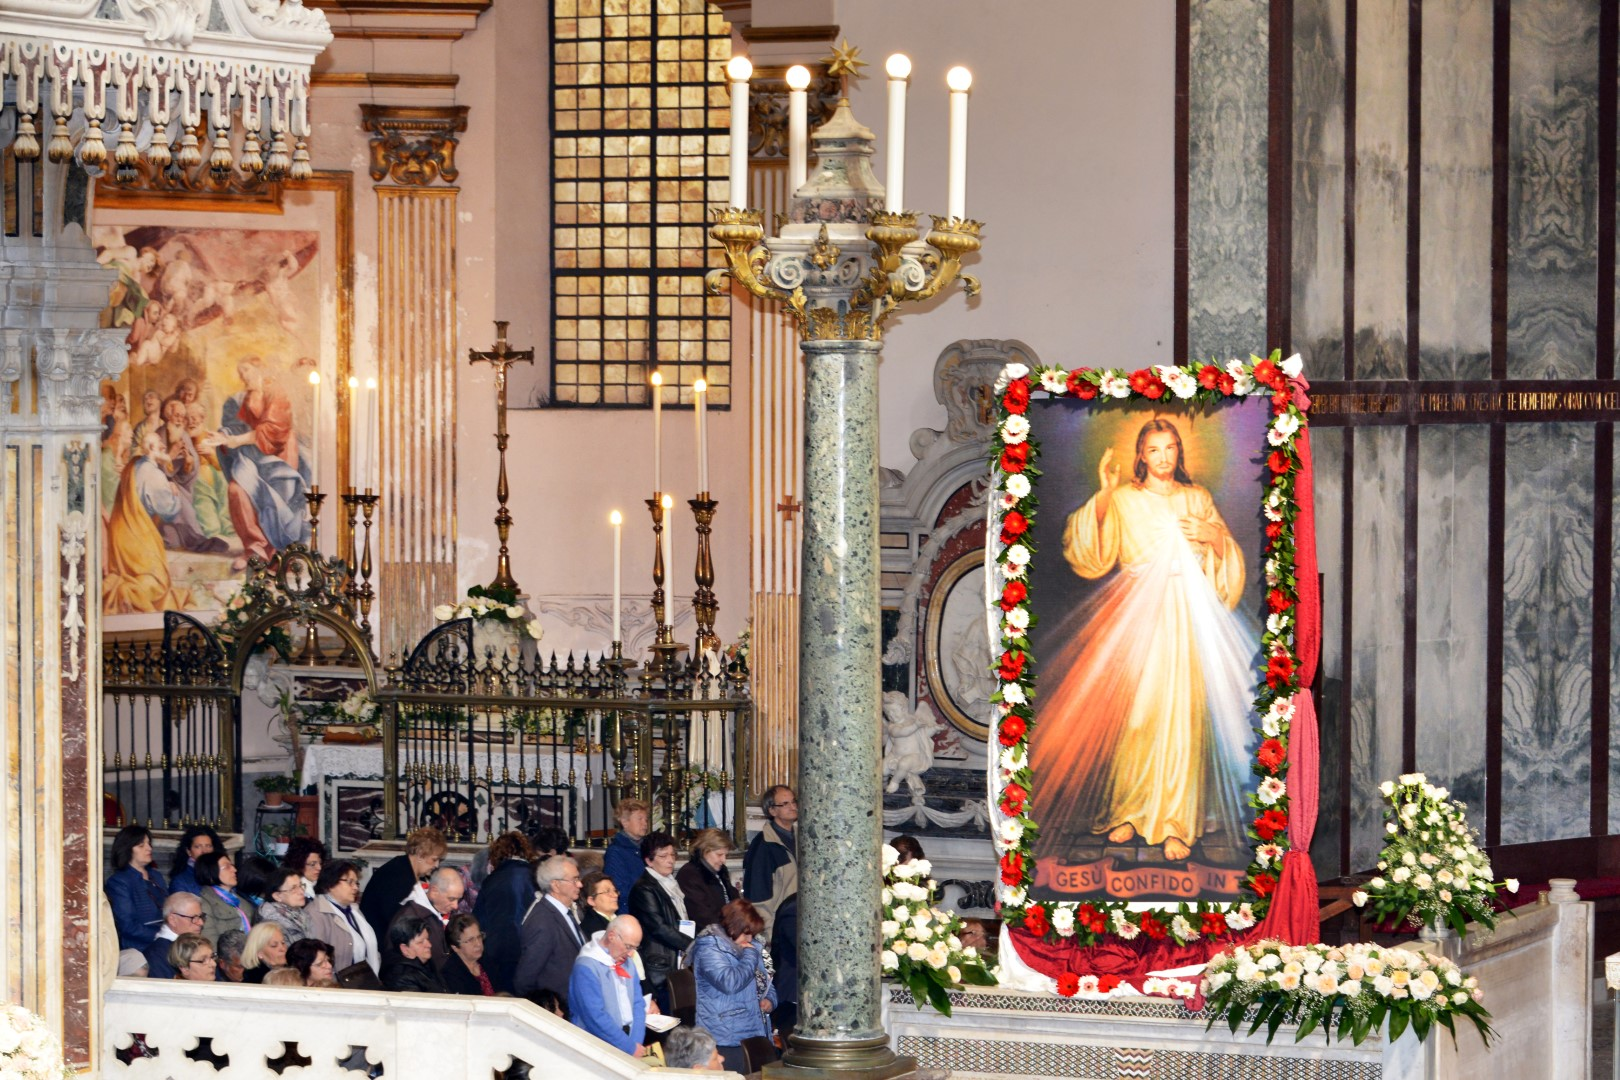 Foto Festa Divina Misericordia 2017 (foto e video)